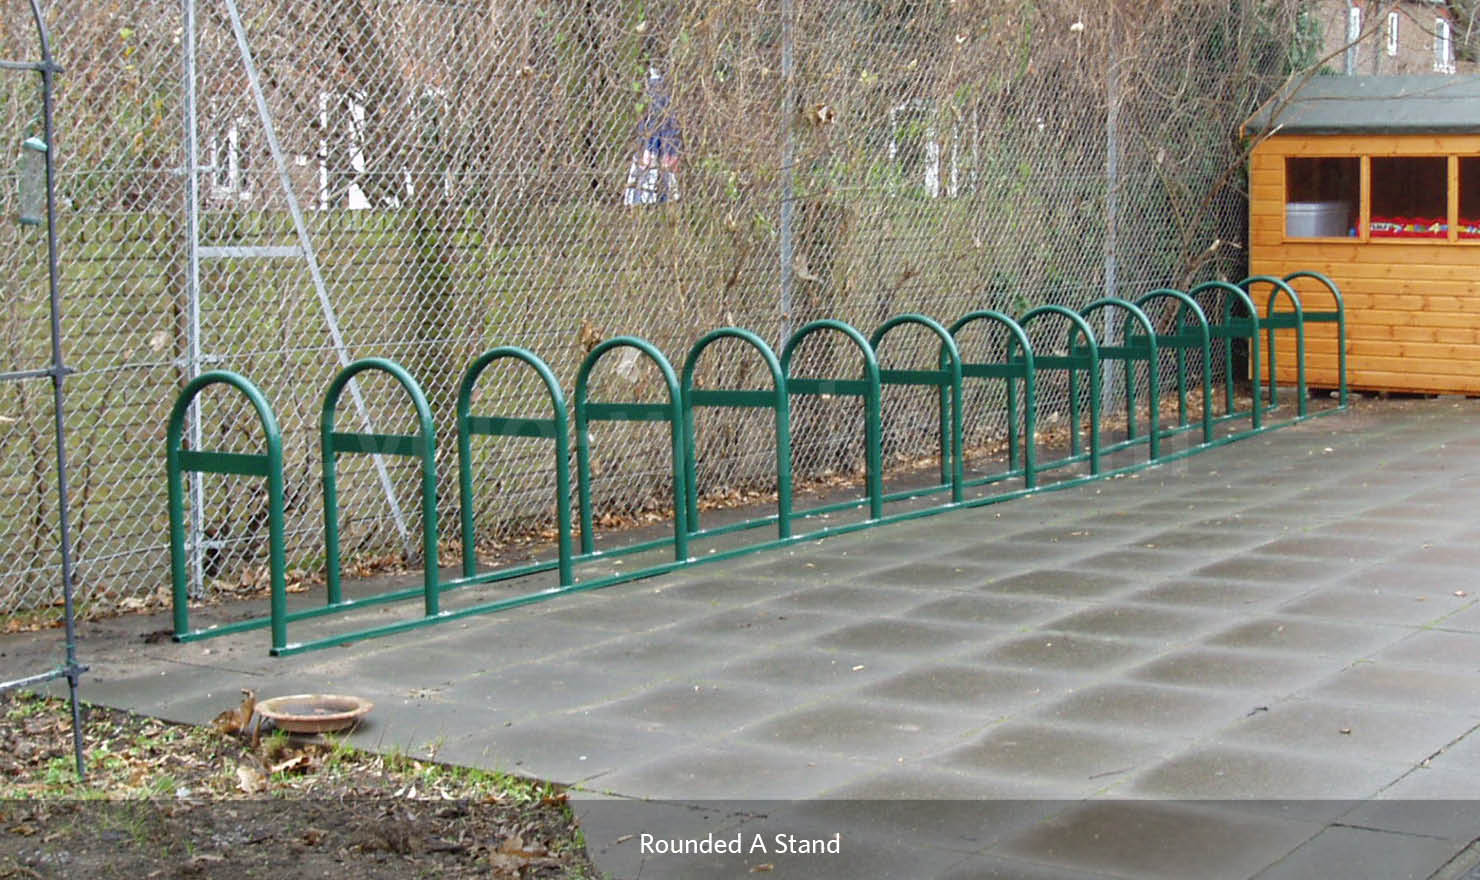 Rounded A Bike Rack